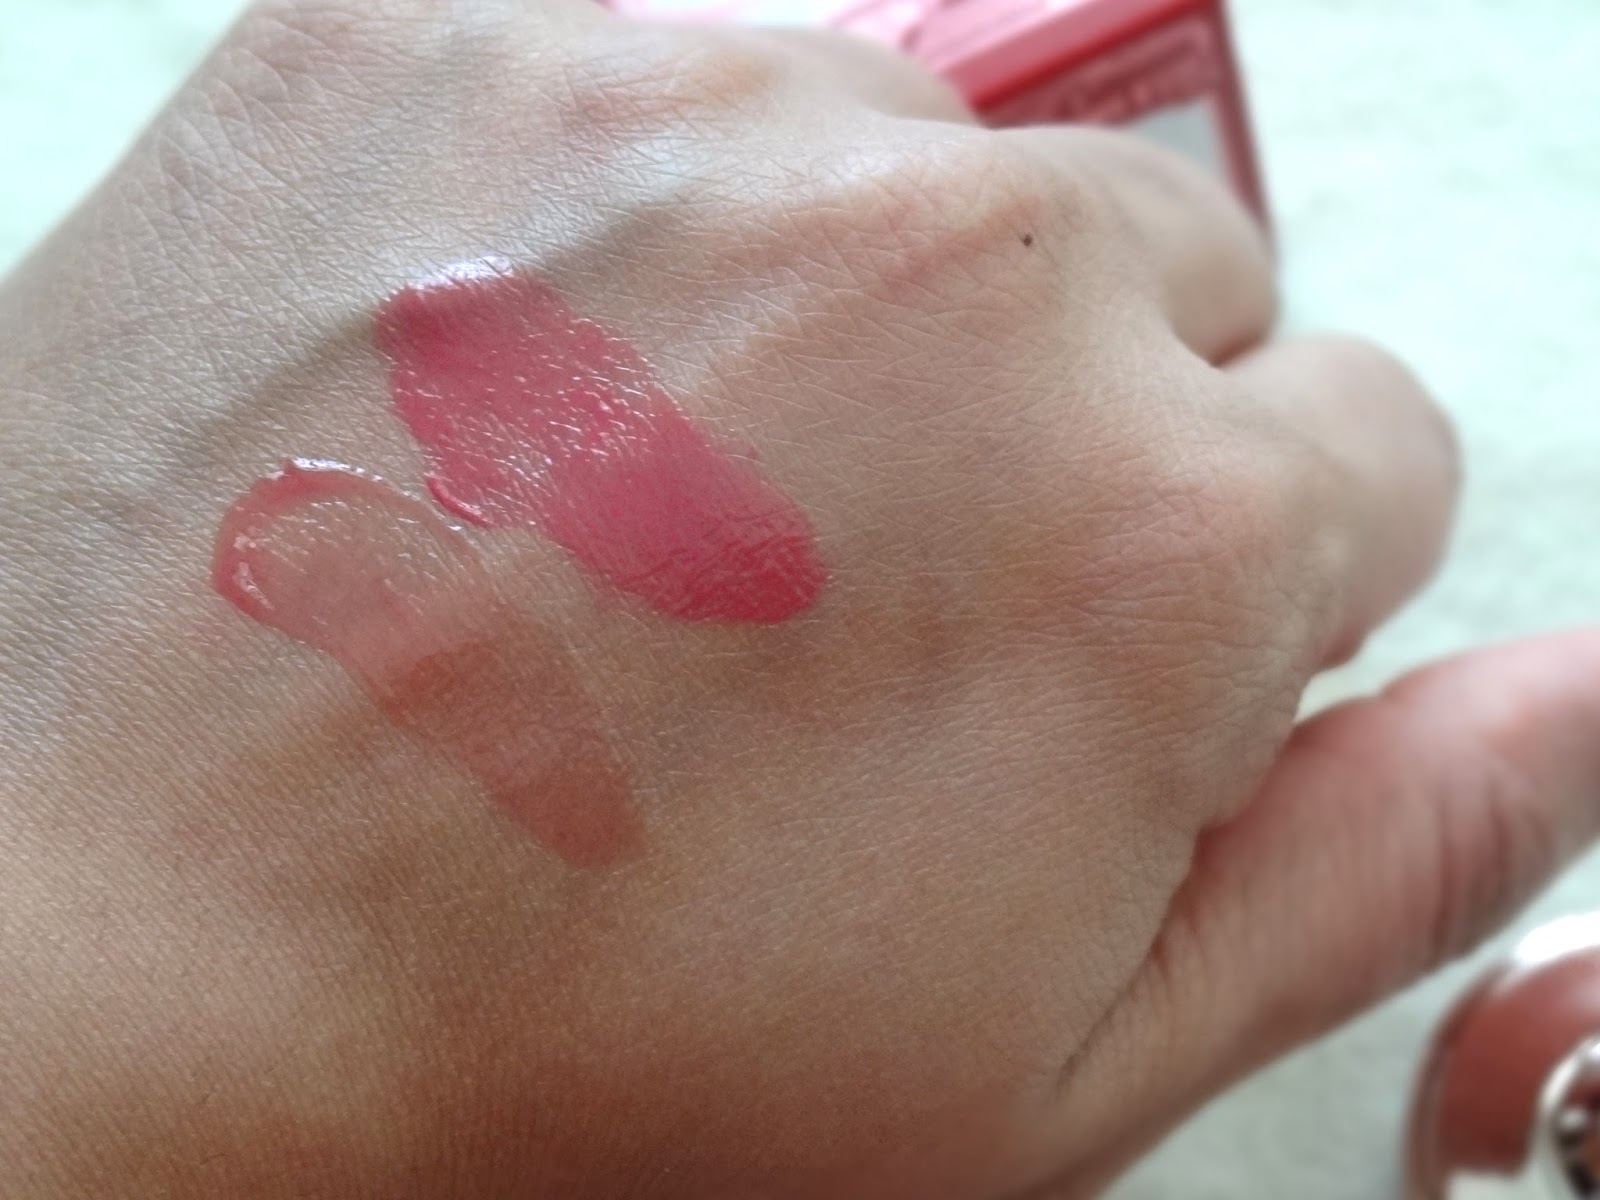 Royal Apothic Tintes Lip Butters in Pink and Berry Swatch